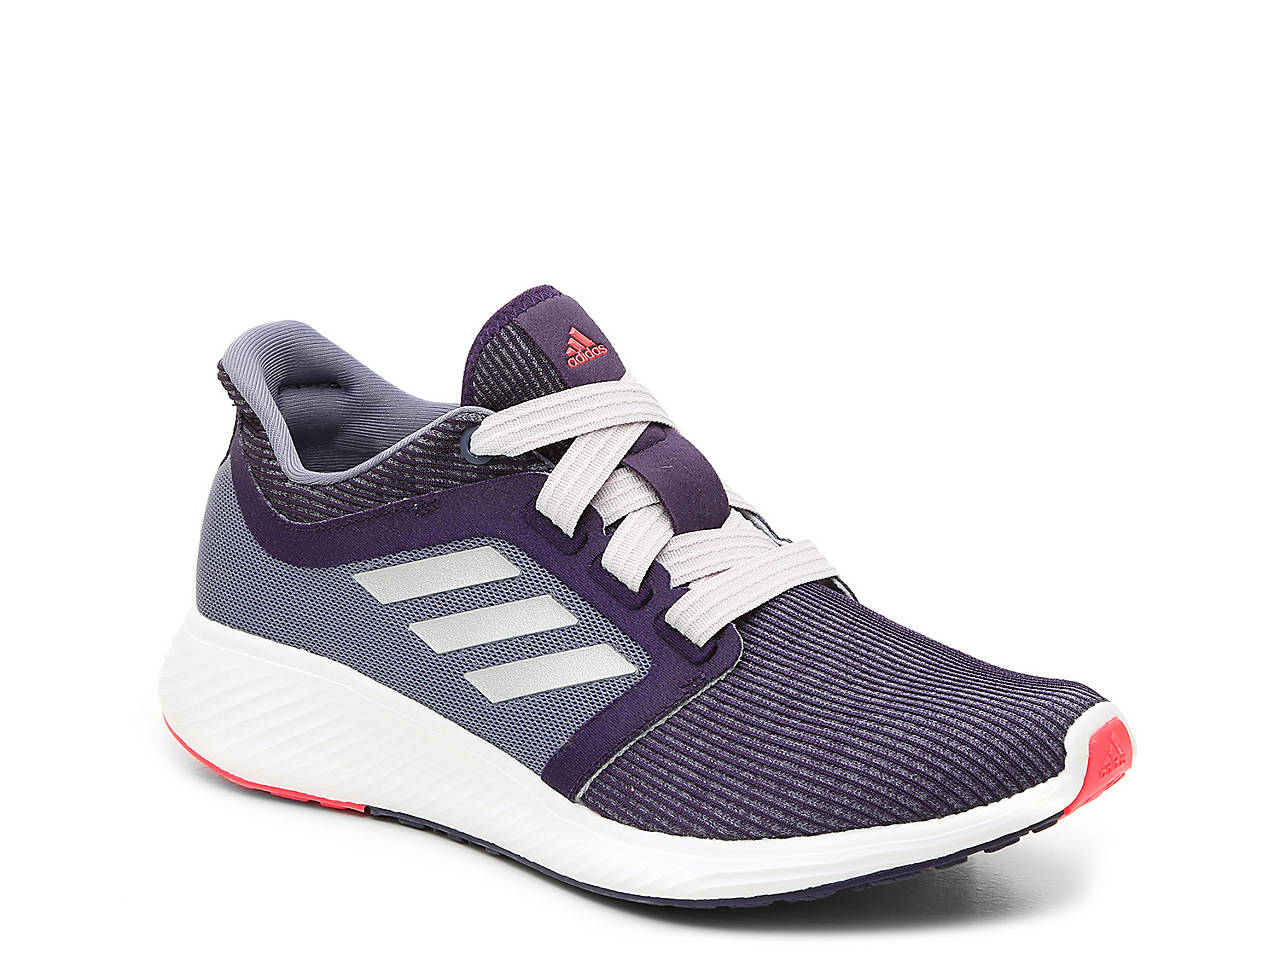 5755342440bef adidas Edge Lux 3 Lightweight Running Shoe - Women s Women s Shoes